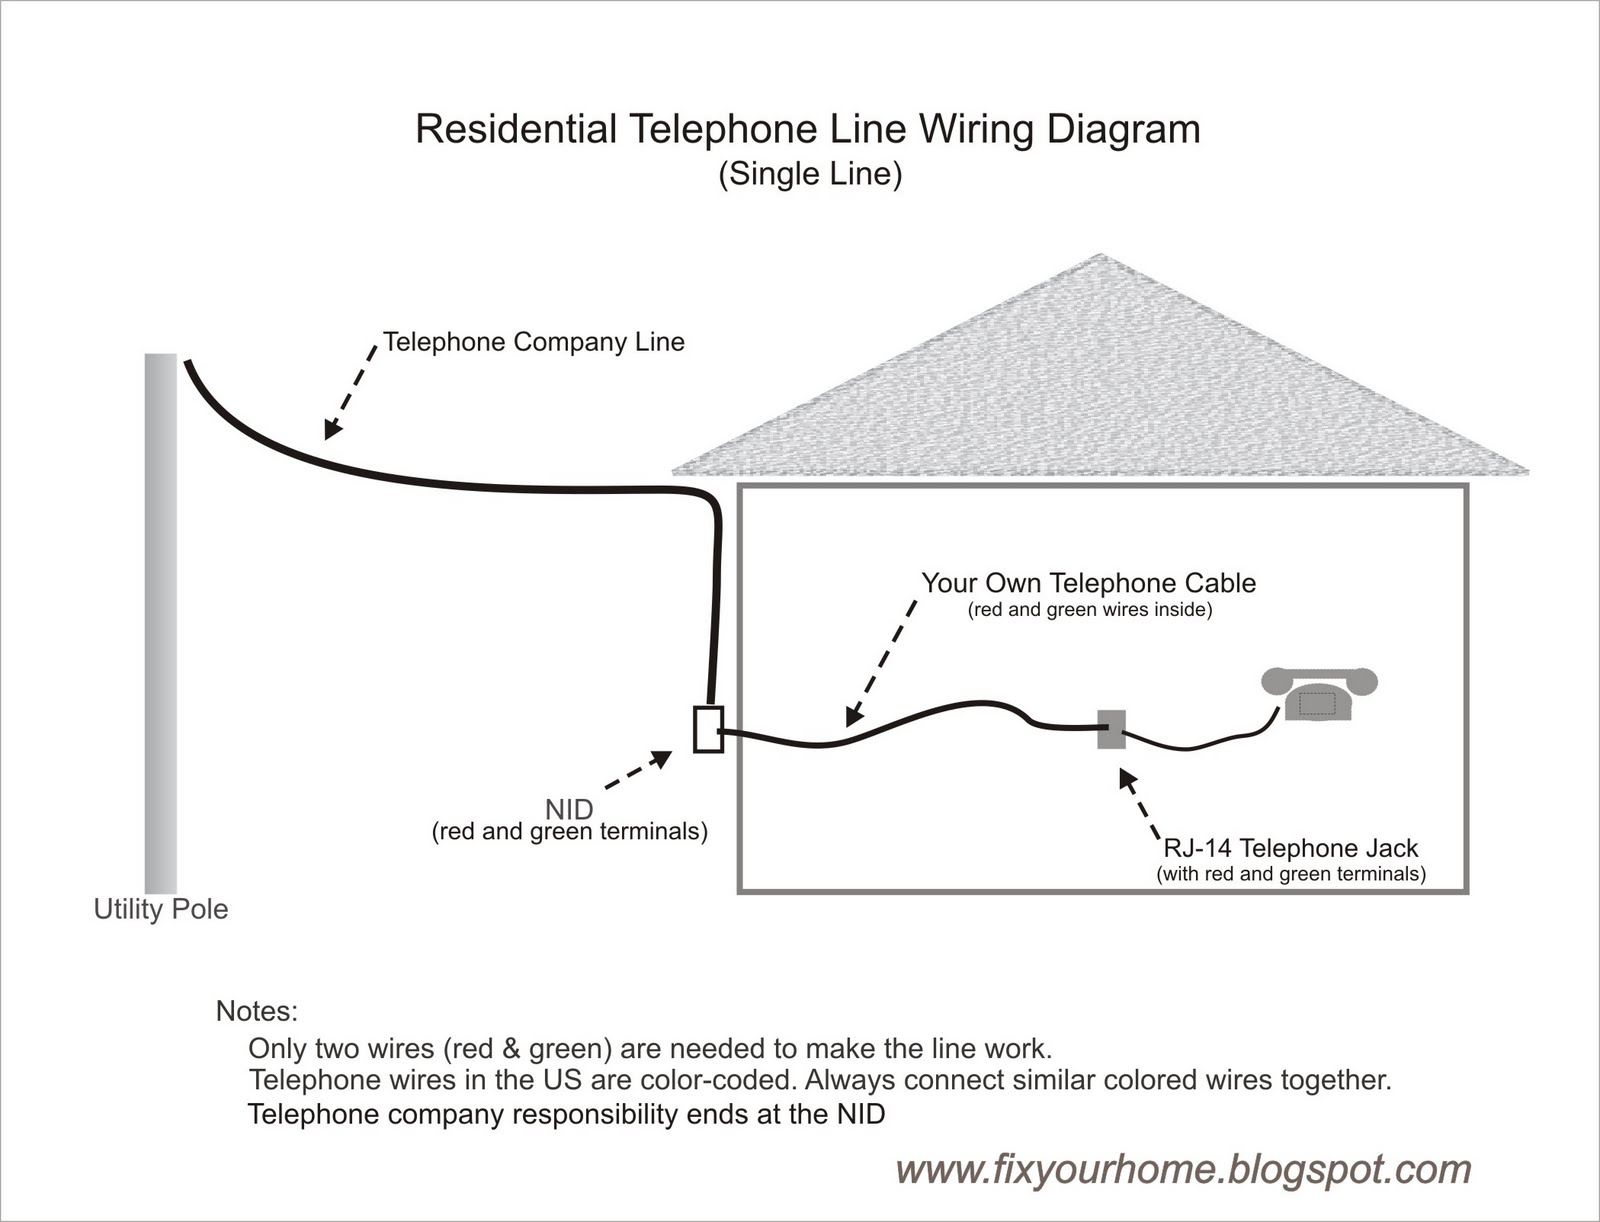 Single Line Telephone Wiring Diagram Precipitation Water Cycle Fix Your Home How To Wire Own